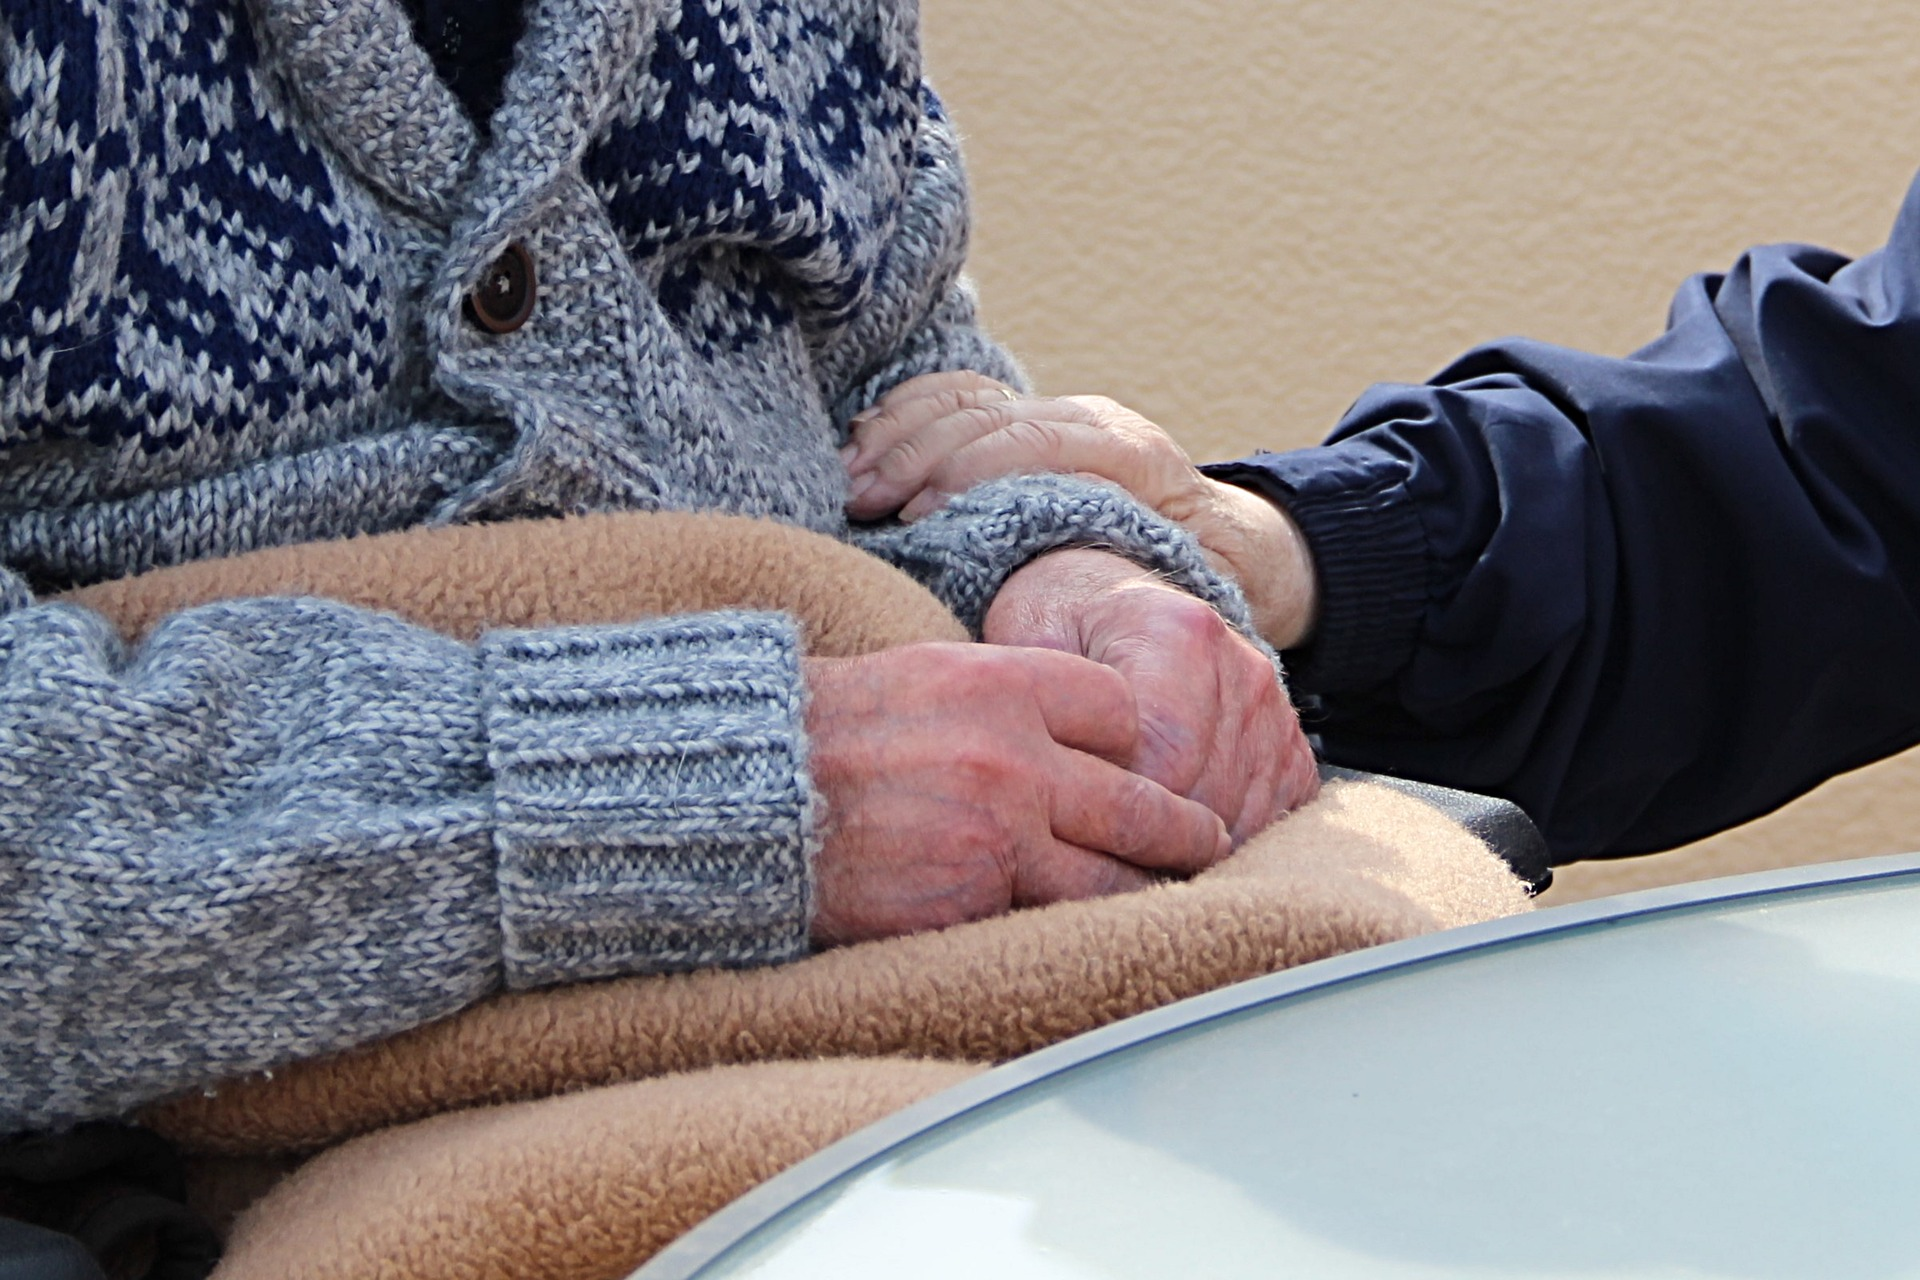 Who is really looking after the elderly in care homes - Crisis in Care Recruitment?